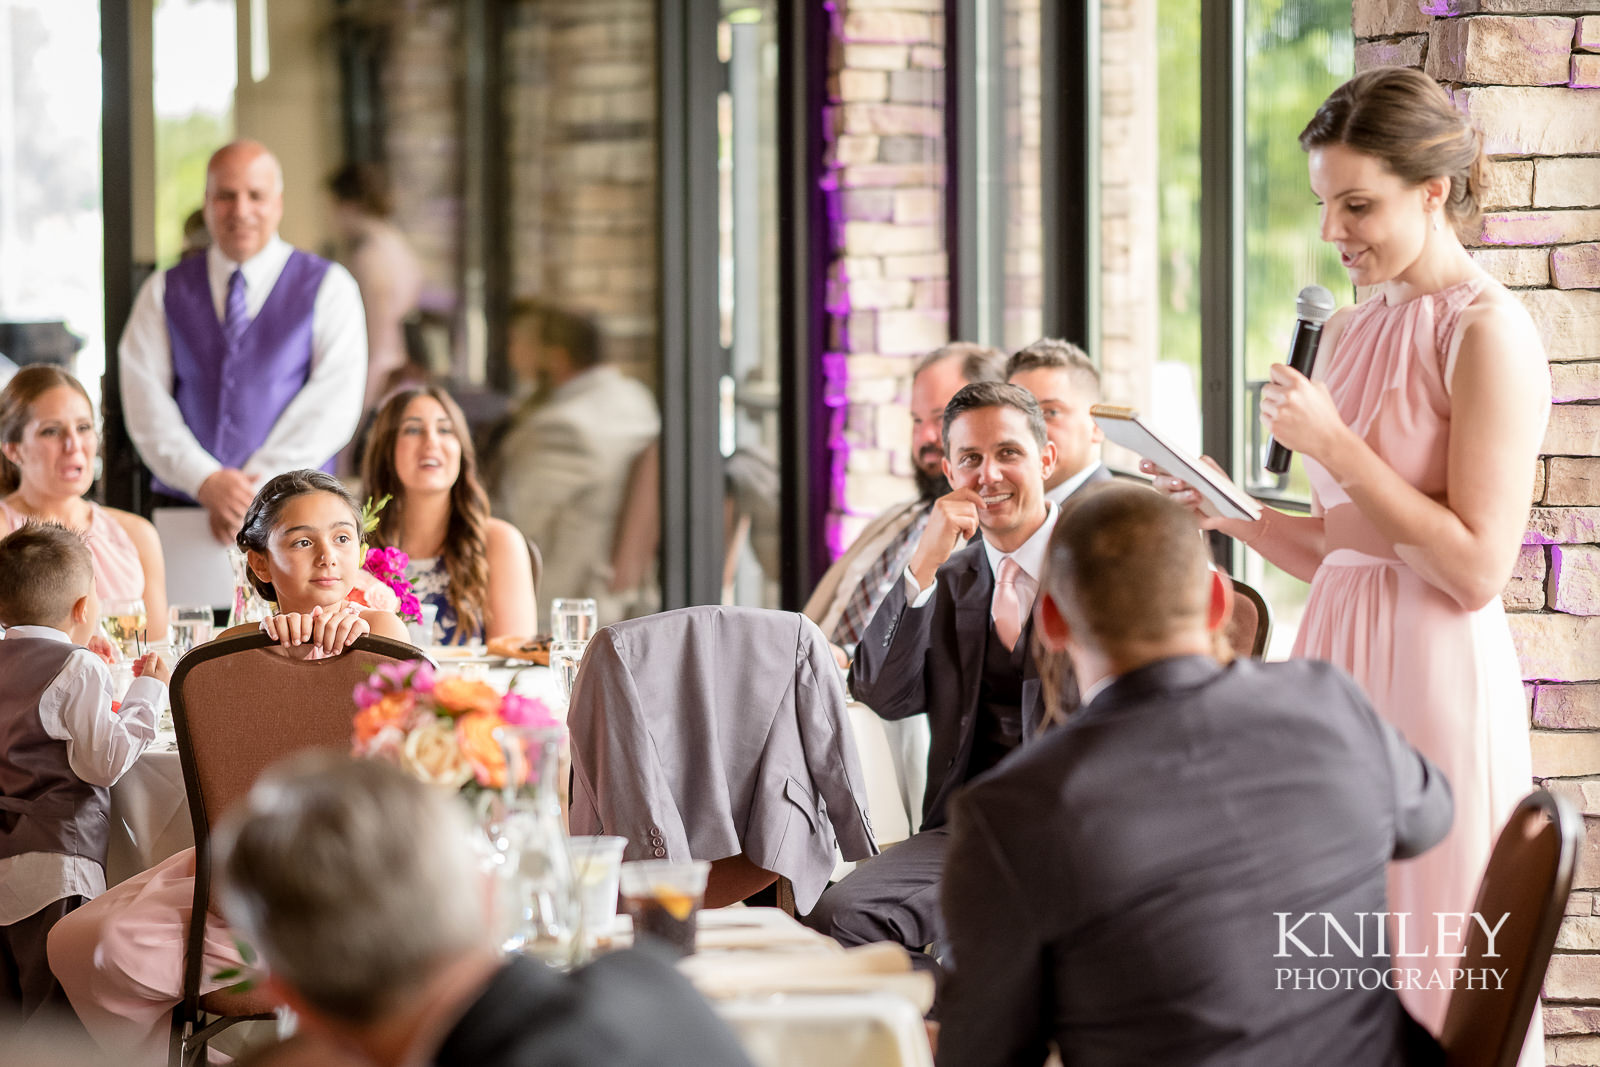 095 - Ravenwood Golf Club wedding pictures - Rochester NY - Kniley Photography - XT2A1253.jpg